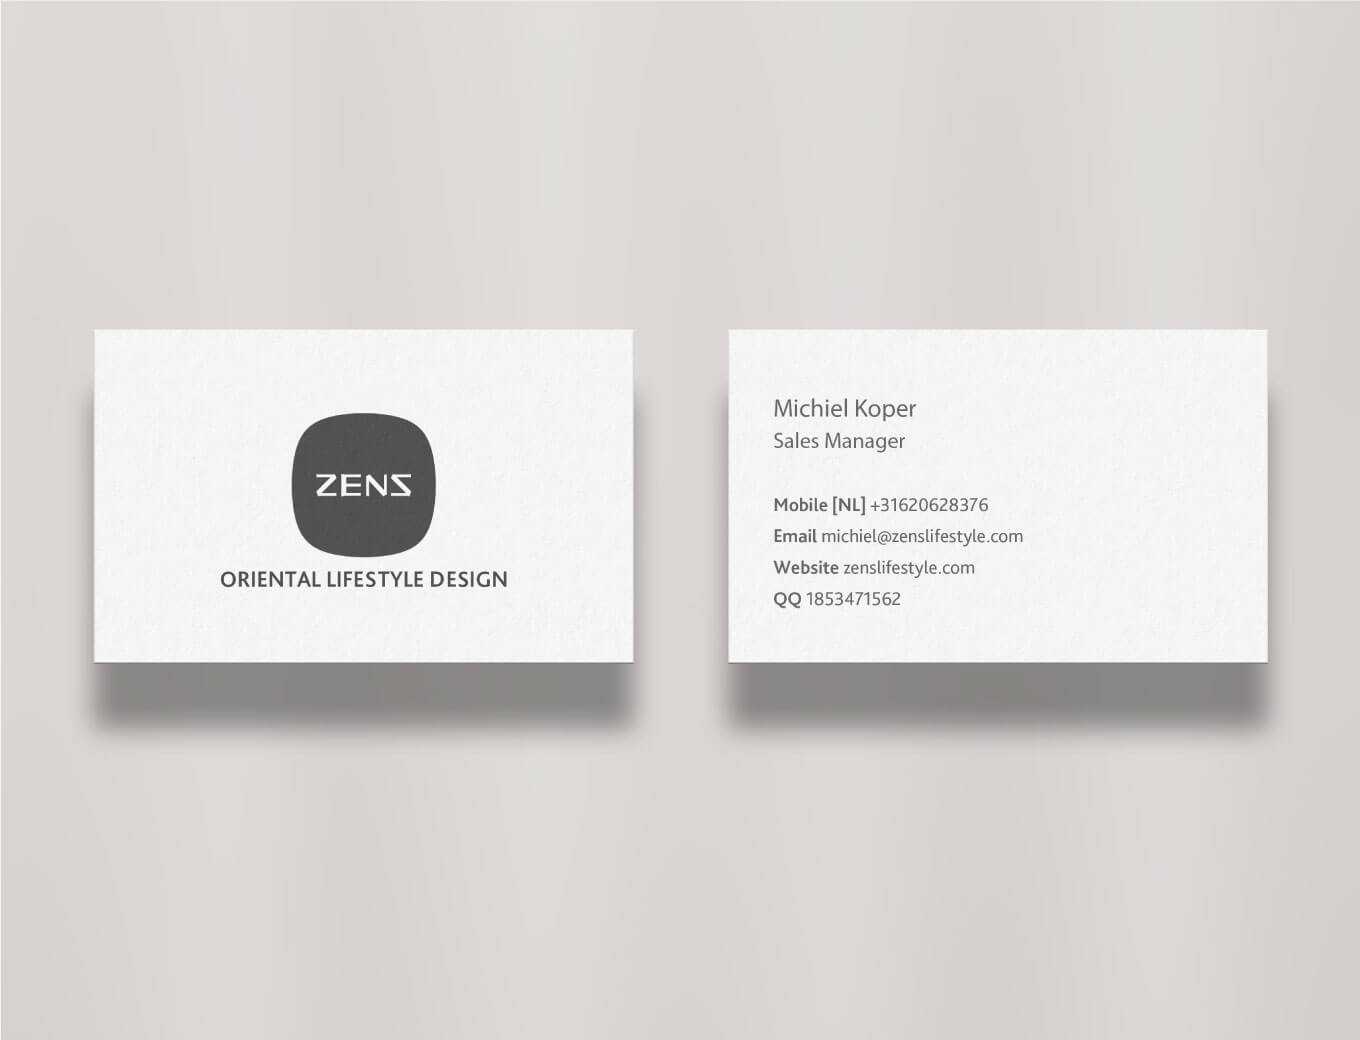 Chinese tableware ZENS visiting cards front and back